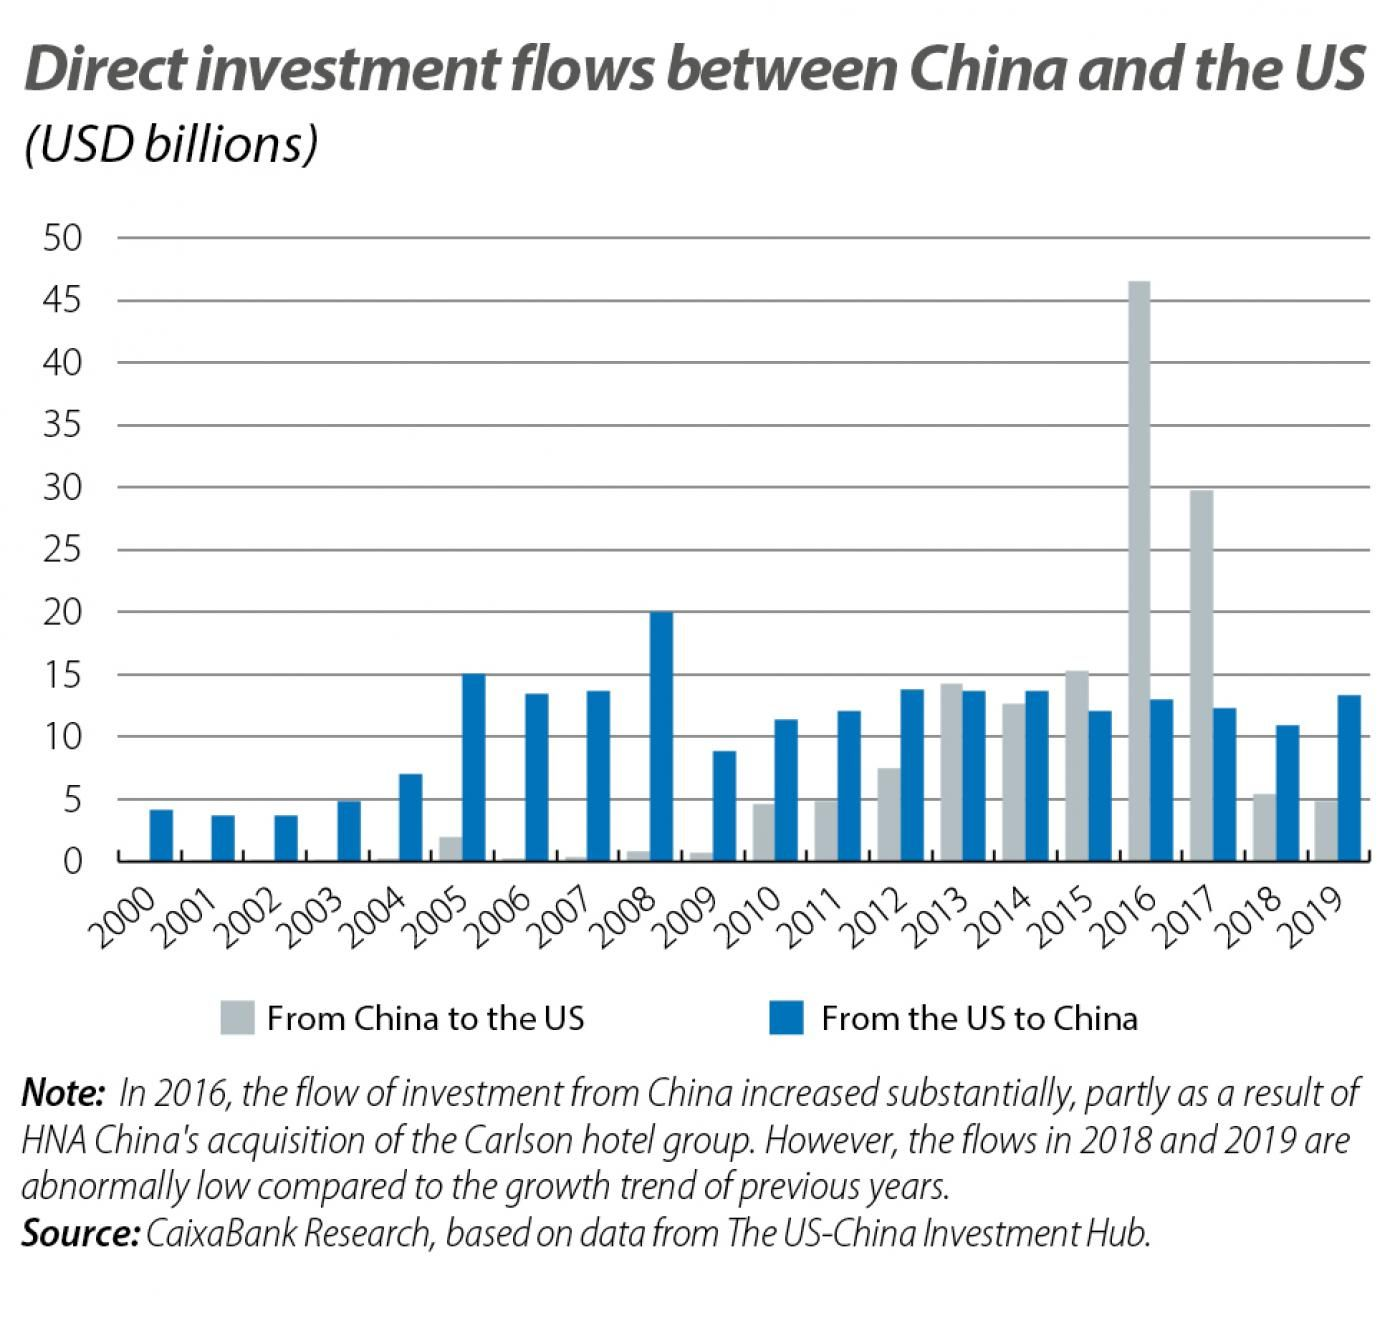 Direct investment flows between China and the US